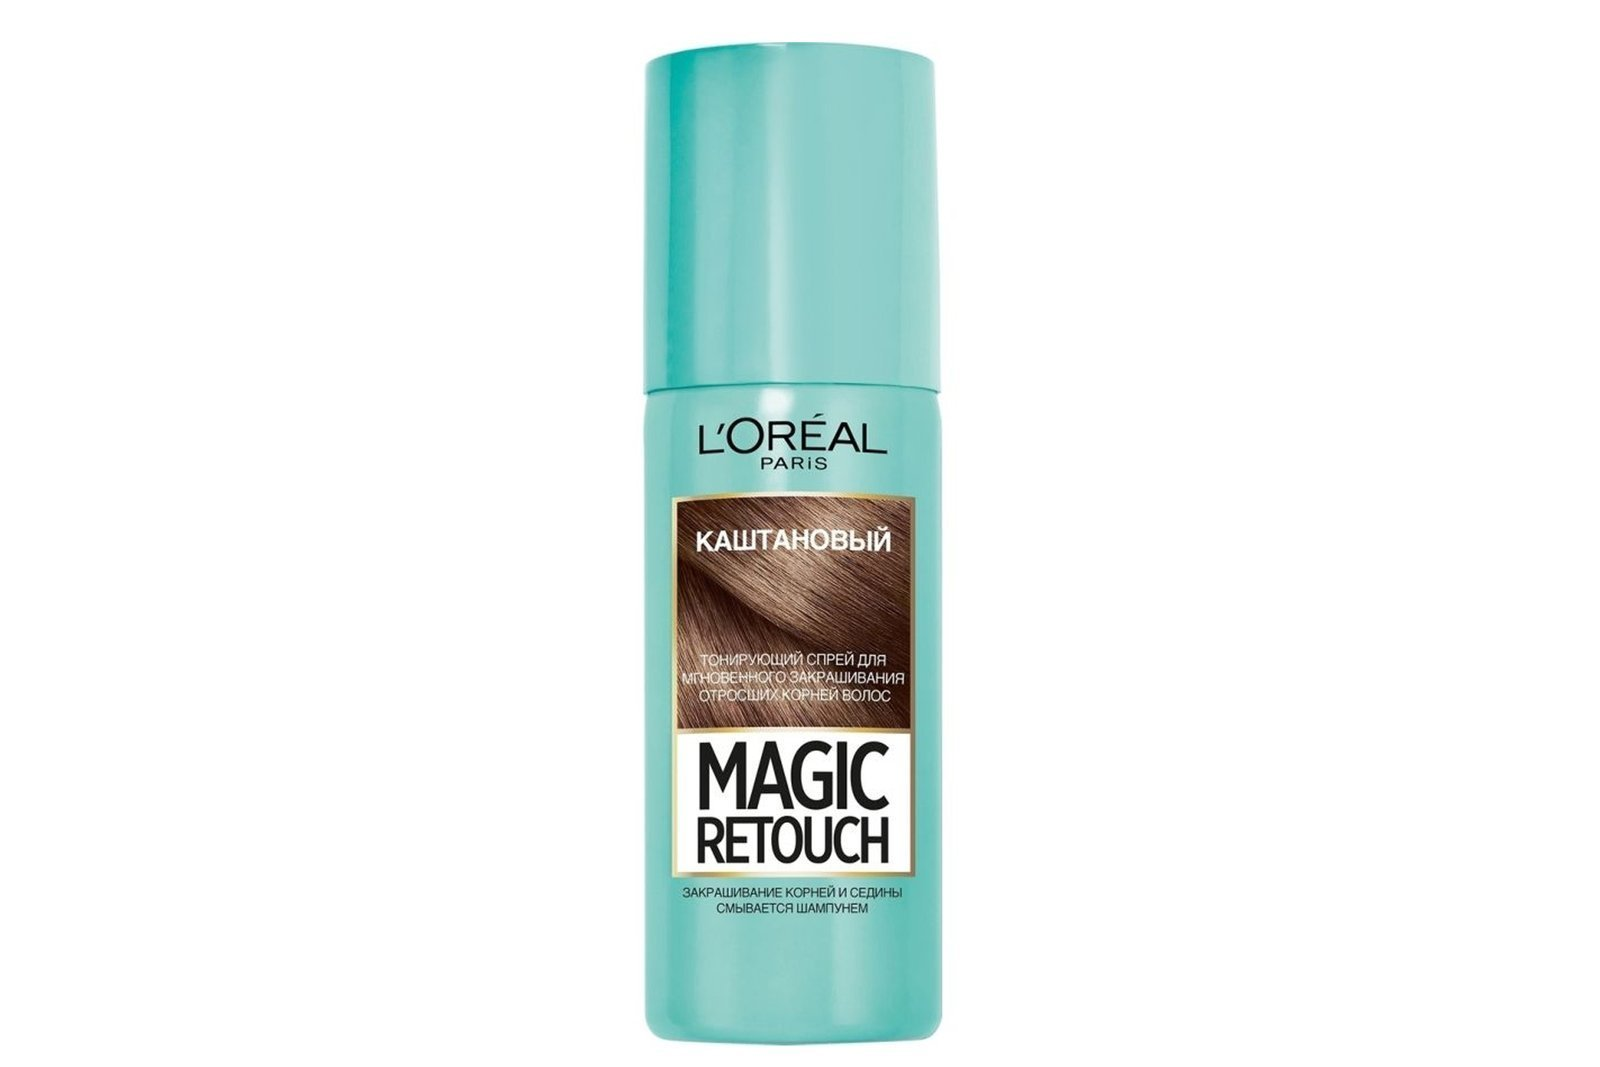 L'Oreal Magic Retouch Chatain Temporary Instant Root Concealer Spray